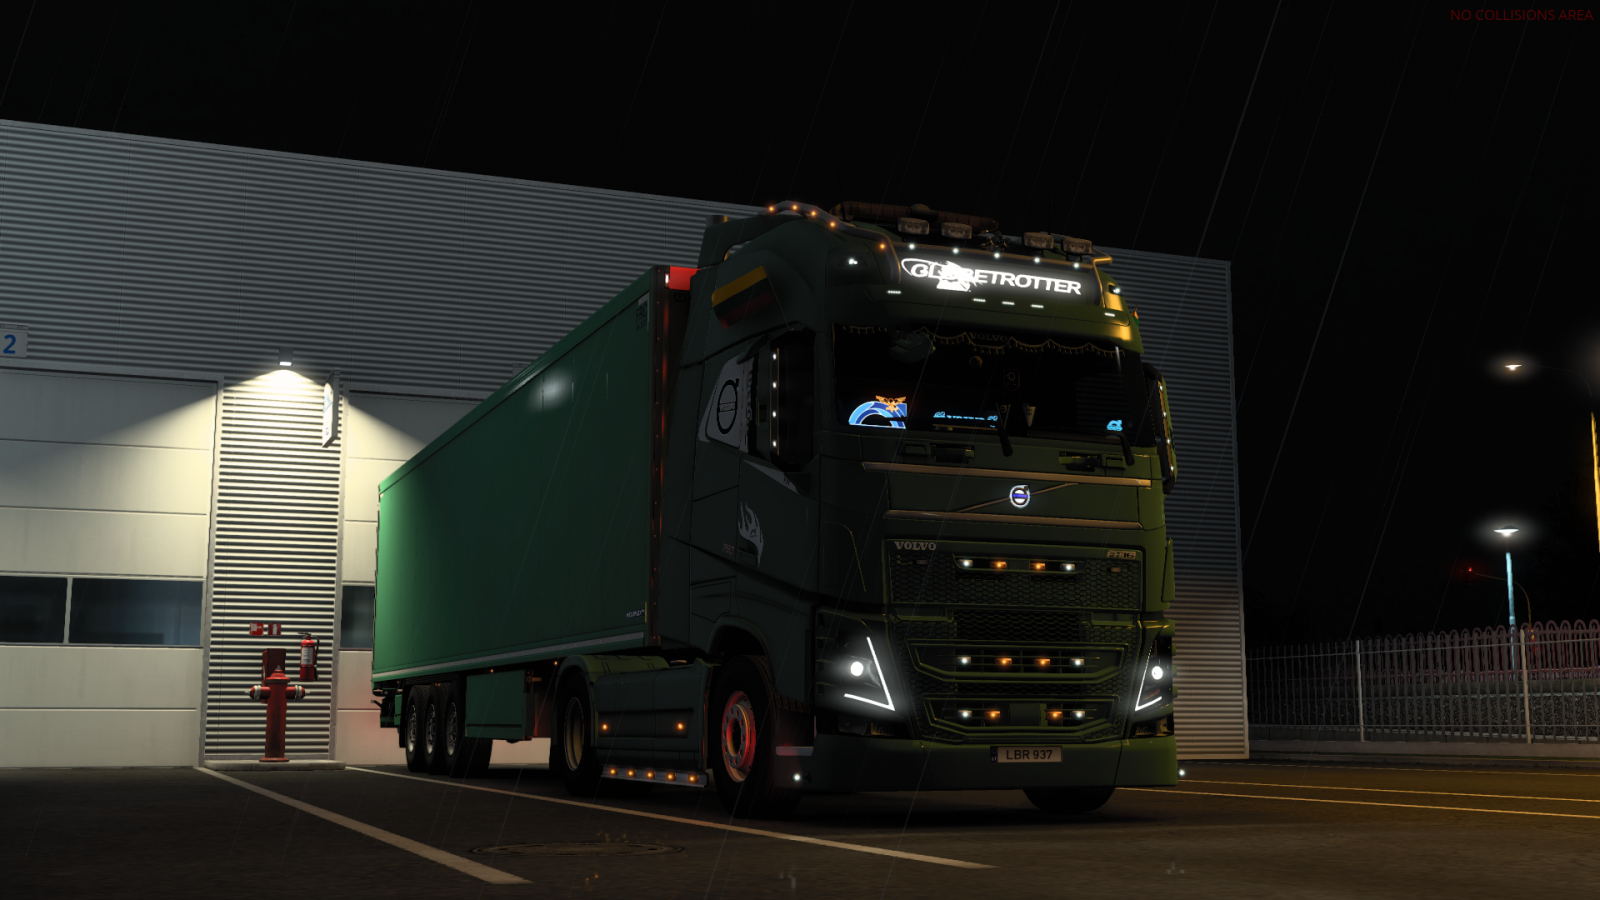 ets2_20210608_142332_00.png